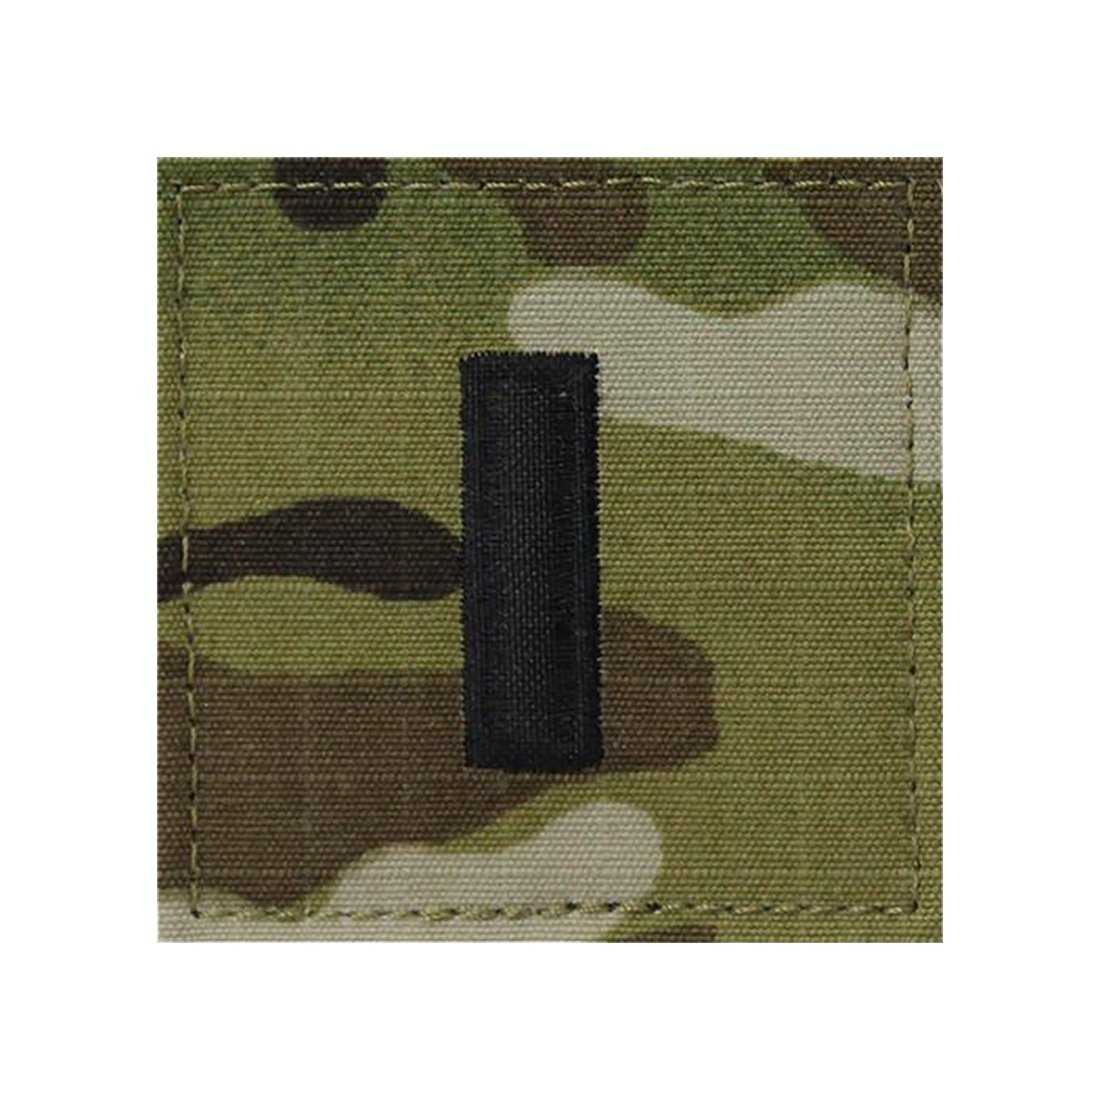 Multicam OCP Officer Rank Insignia With Fastener (1ST LIEUTENANT) by Uniform Accessories Unlimited Inc (Image #1)